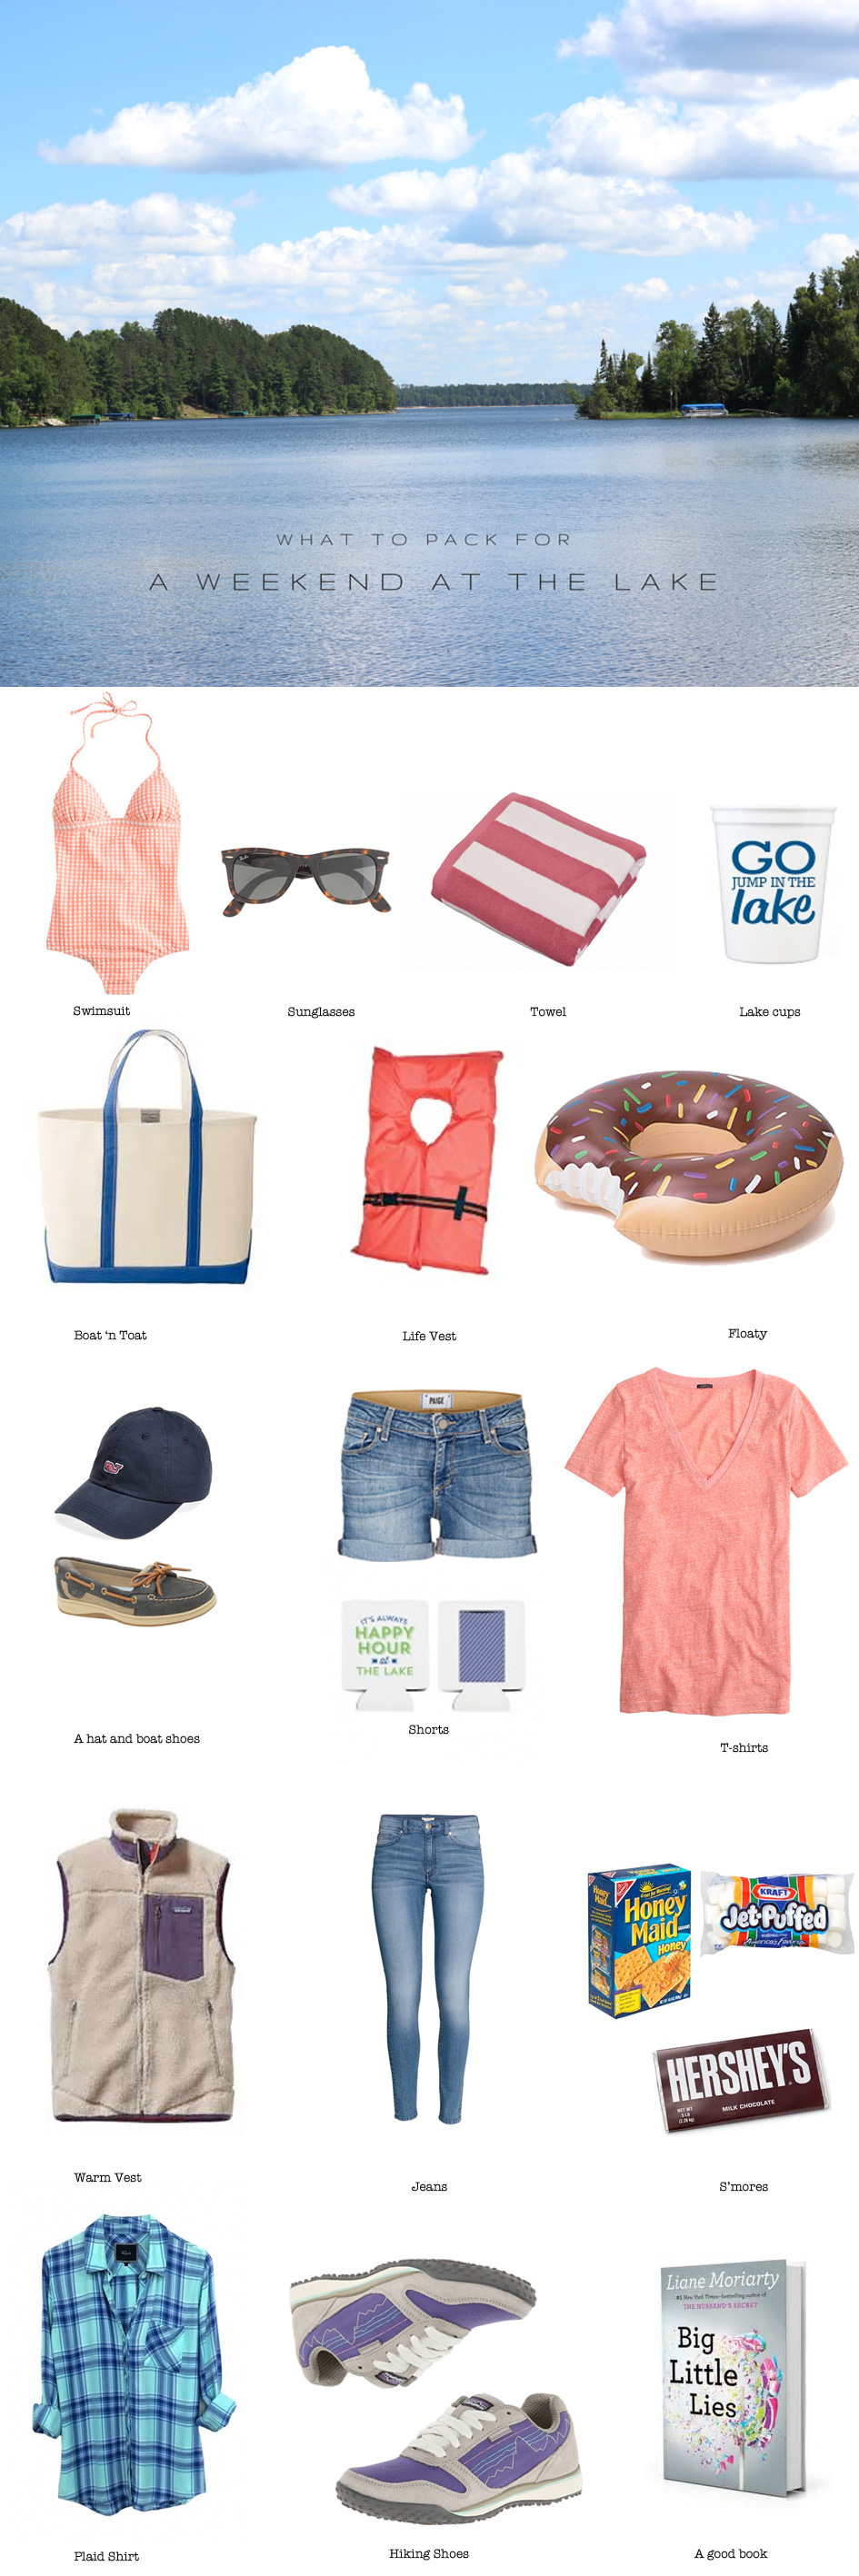 what-to-pack-for-the-lake